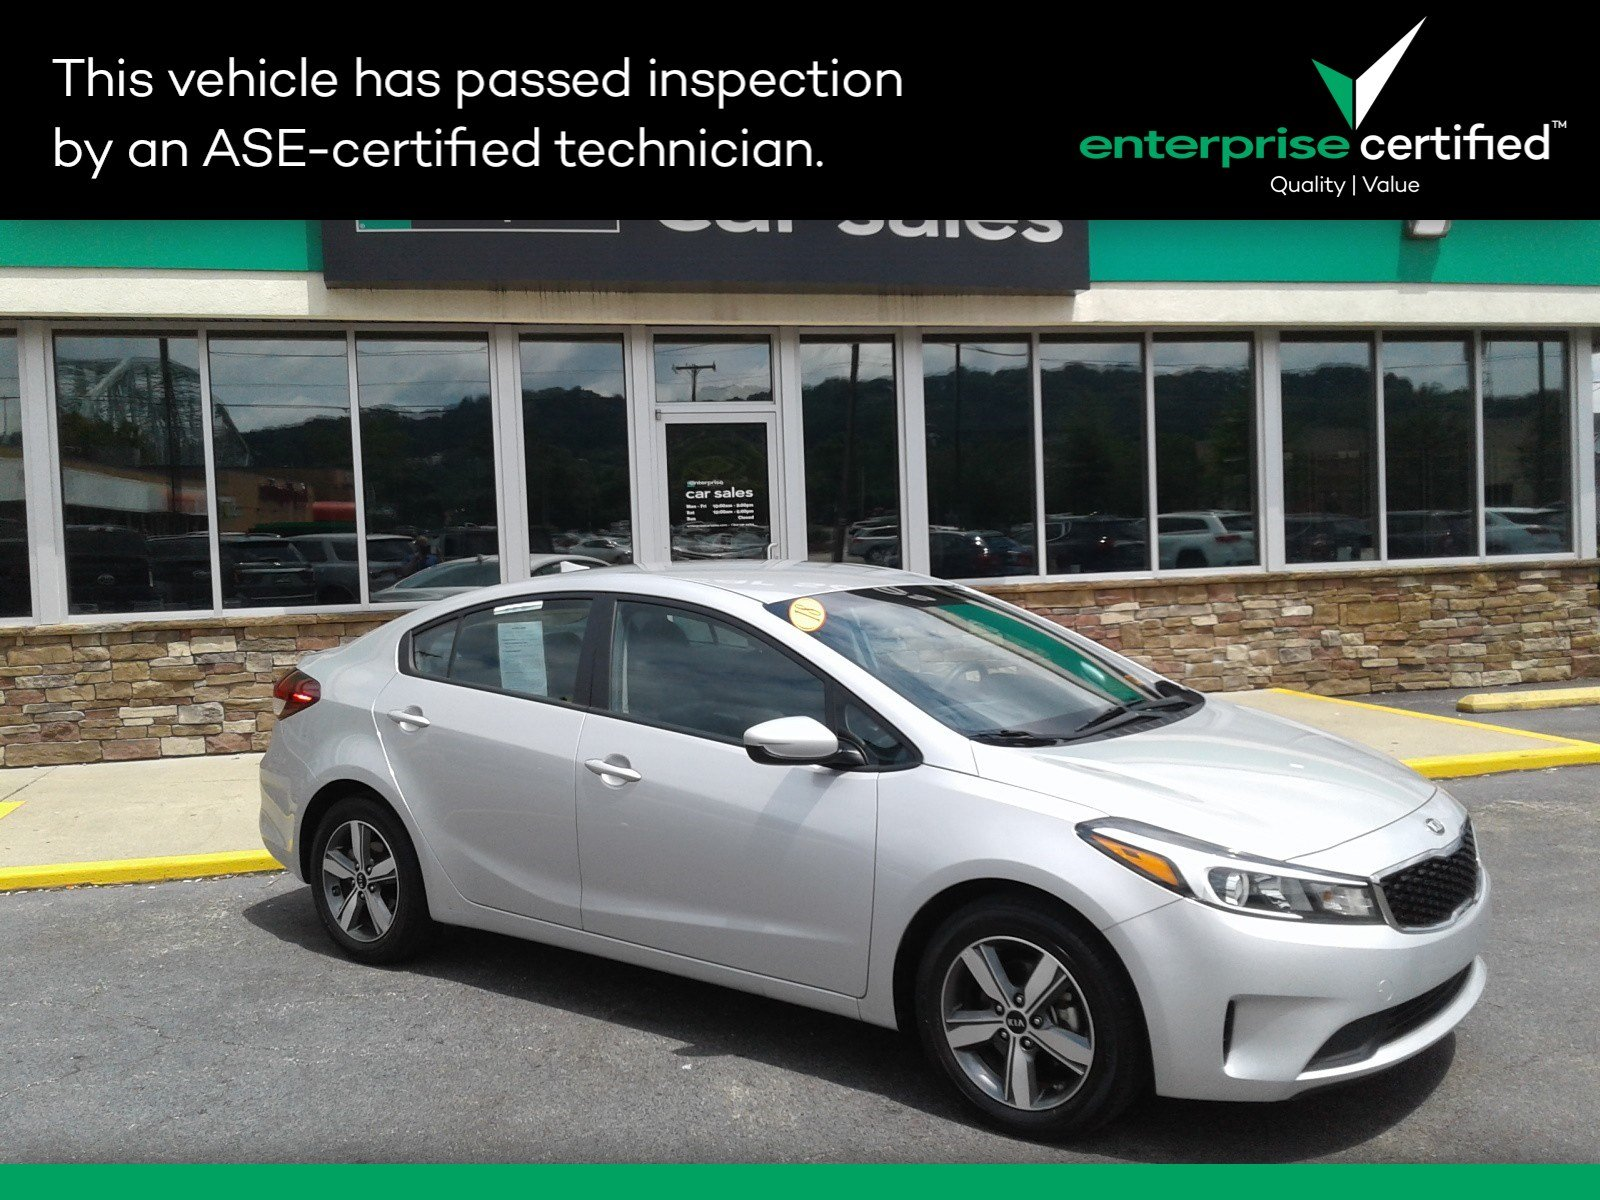 Used Cars Charleston Wv Best Of Enterprise Car Sales Used Cars Trucks Suvs Certified Used Car